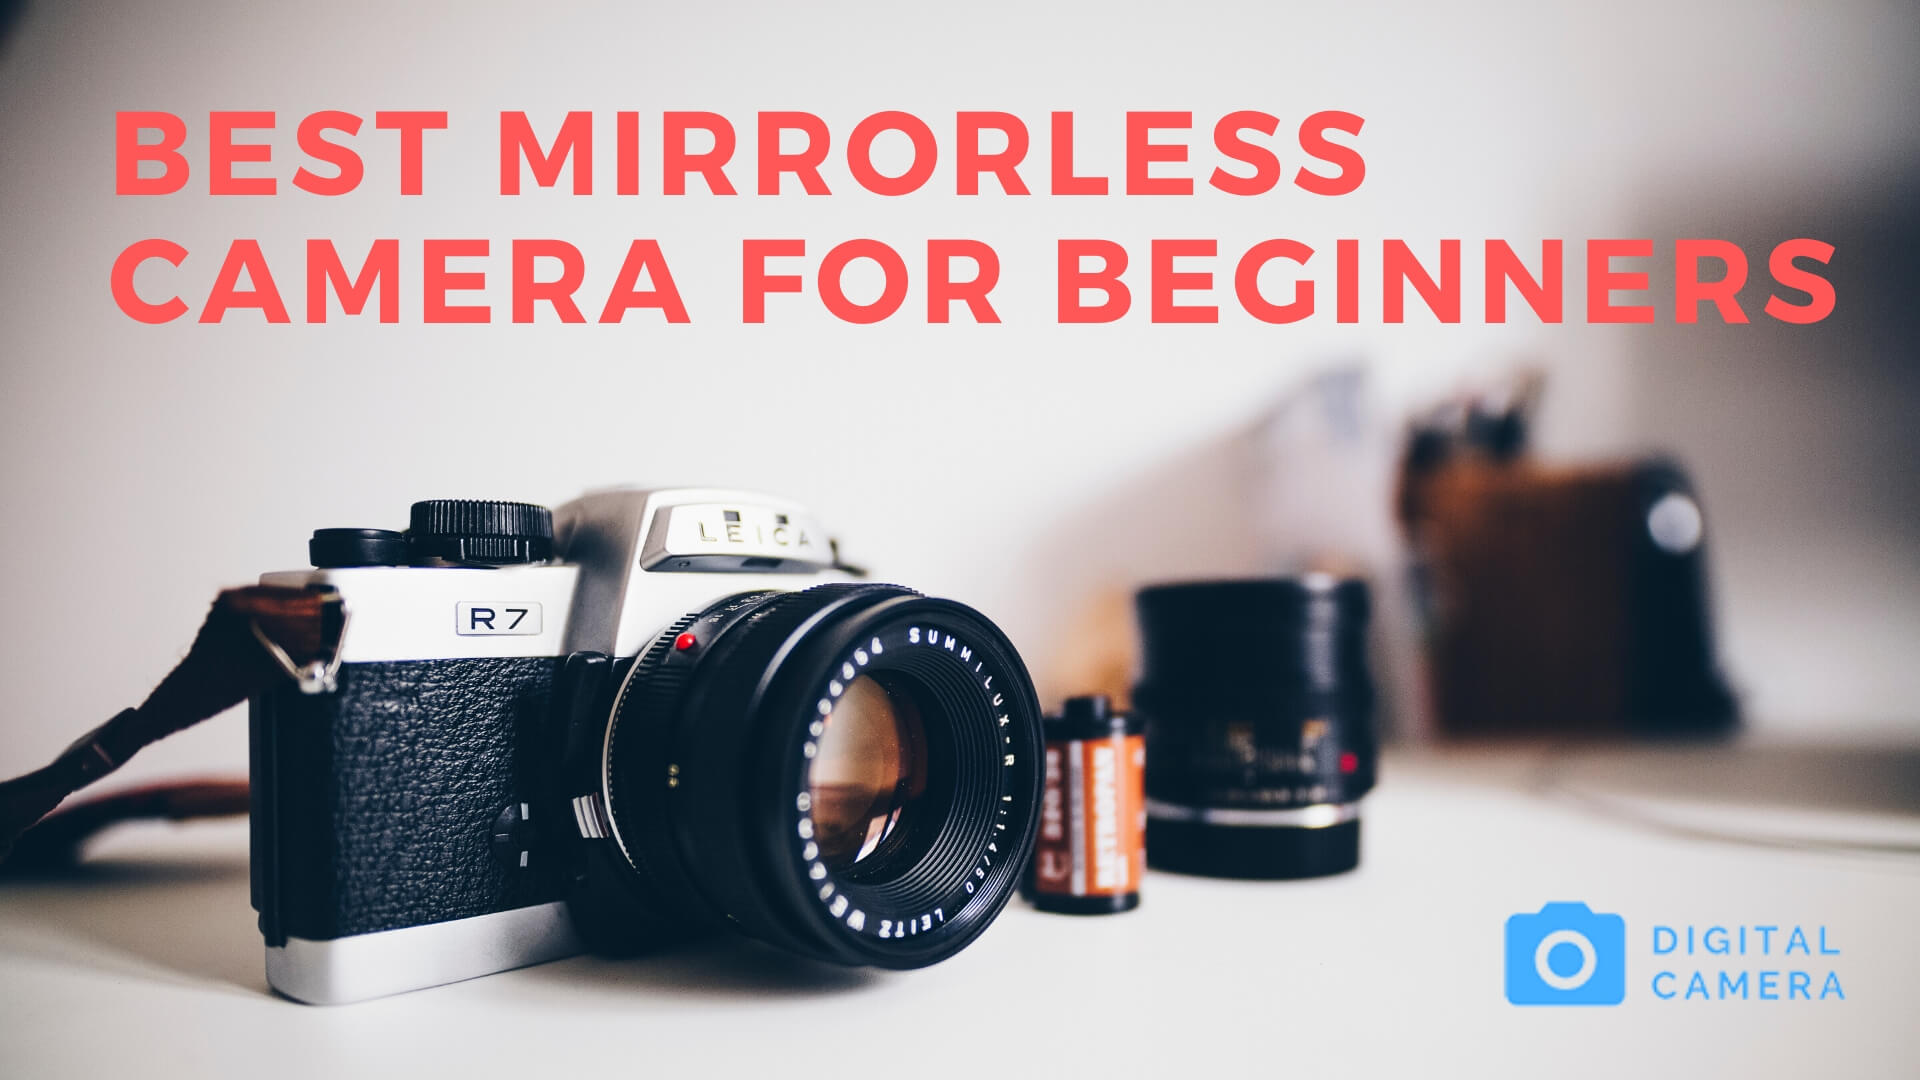 Best camera for beginners 2020